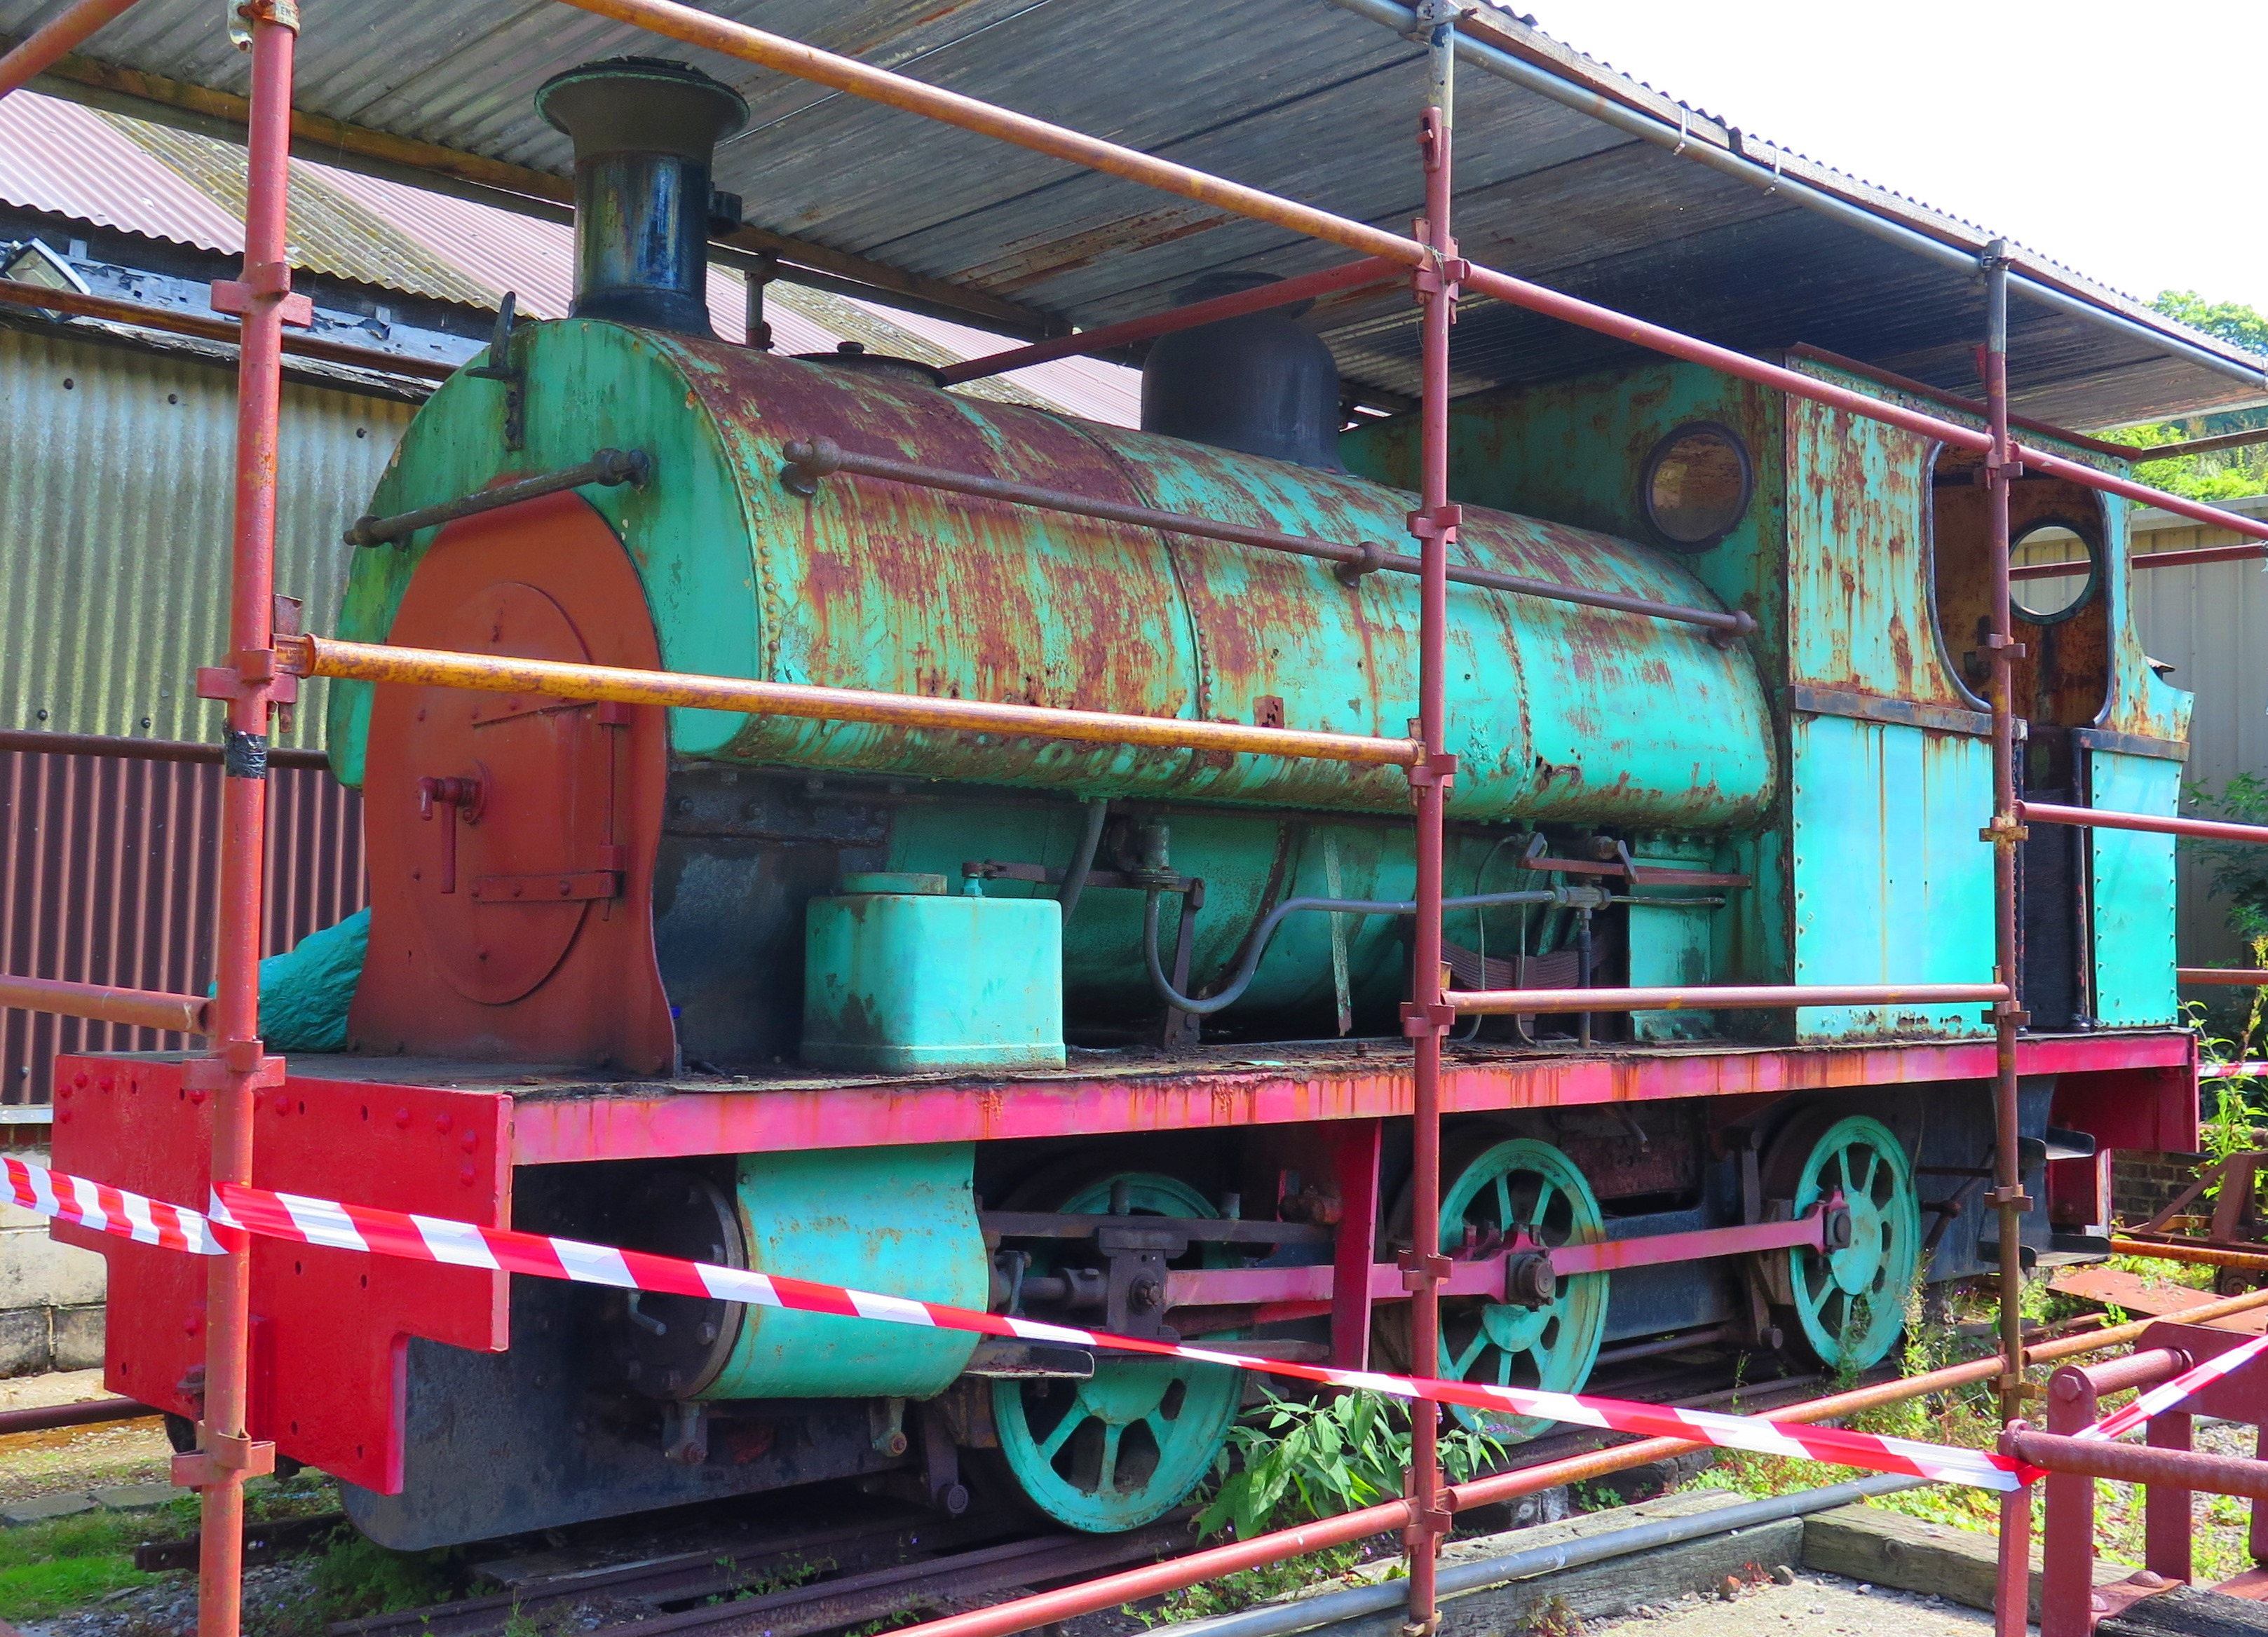 A steam locomotive for the Trust